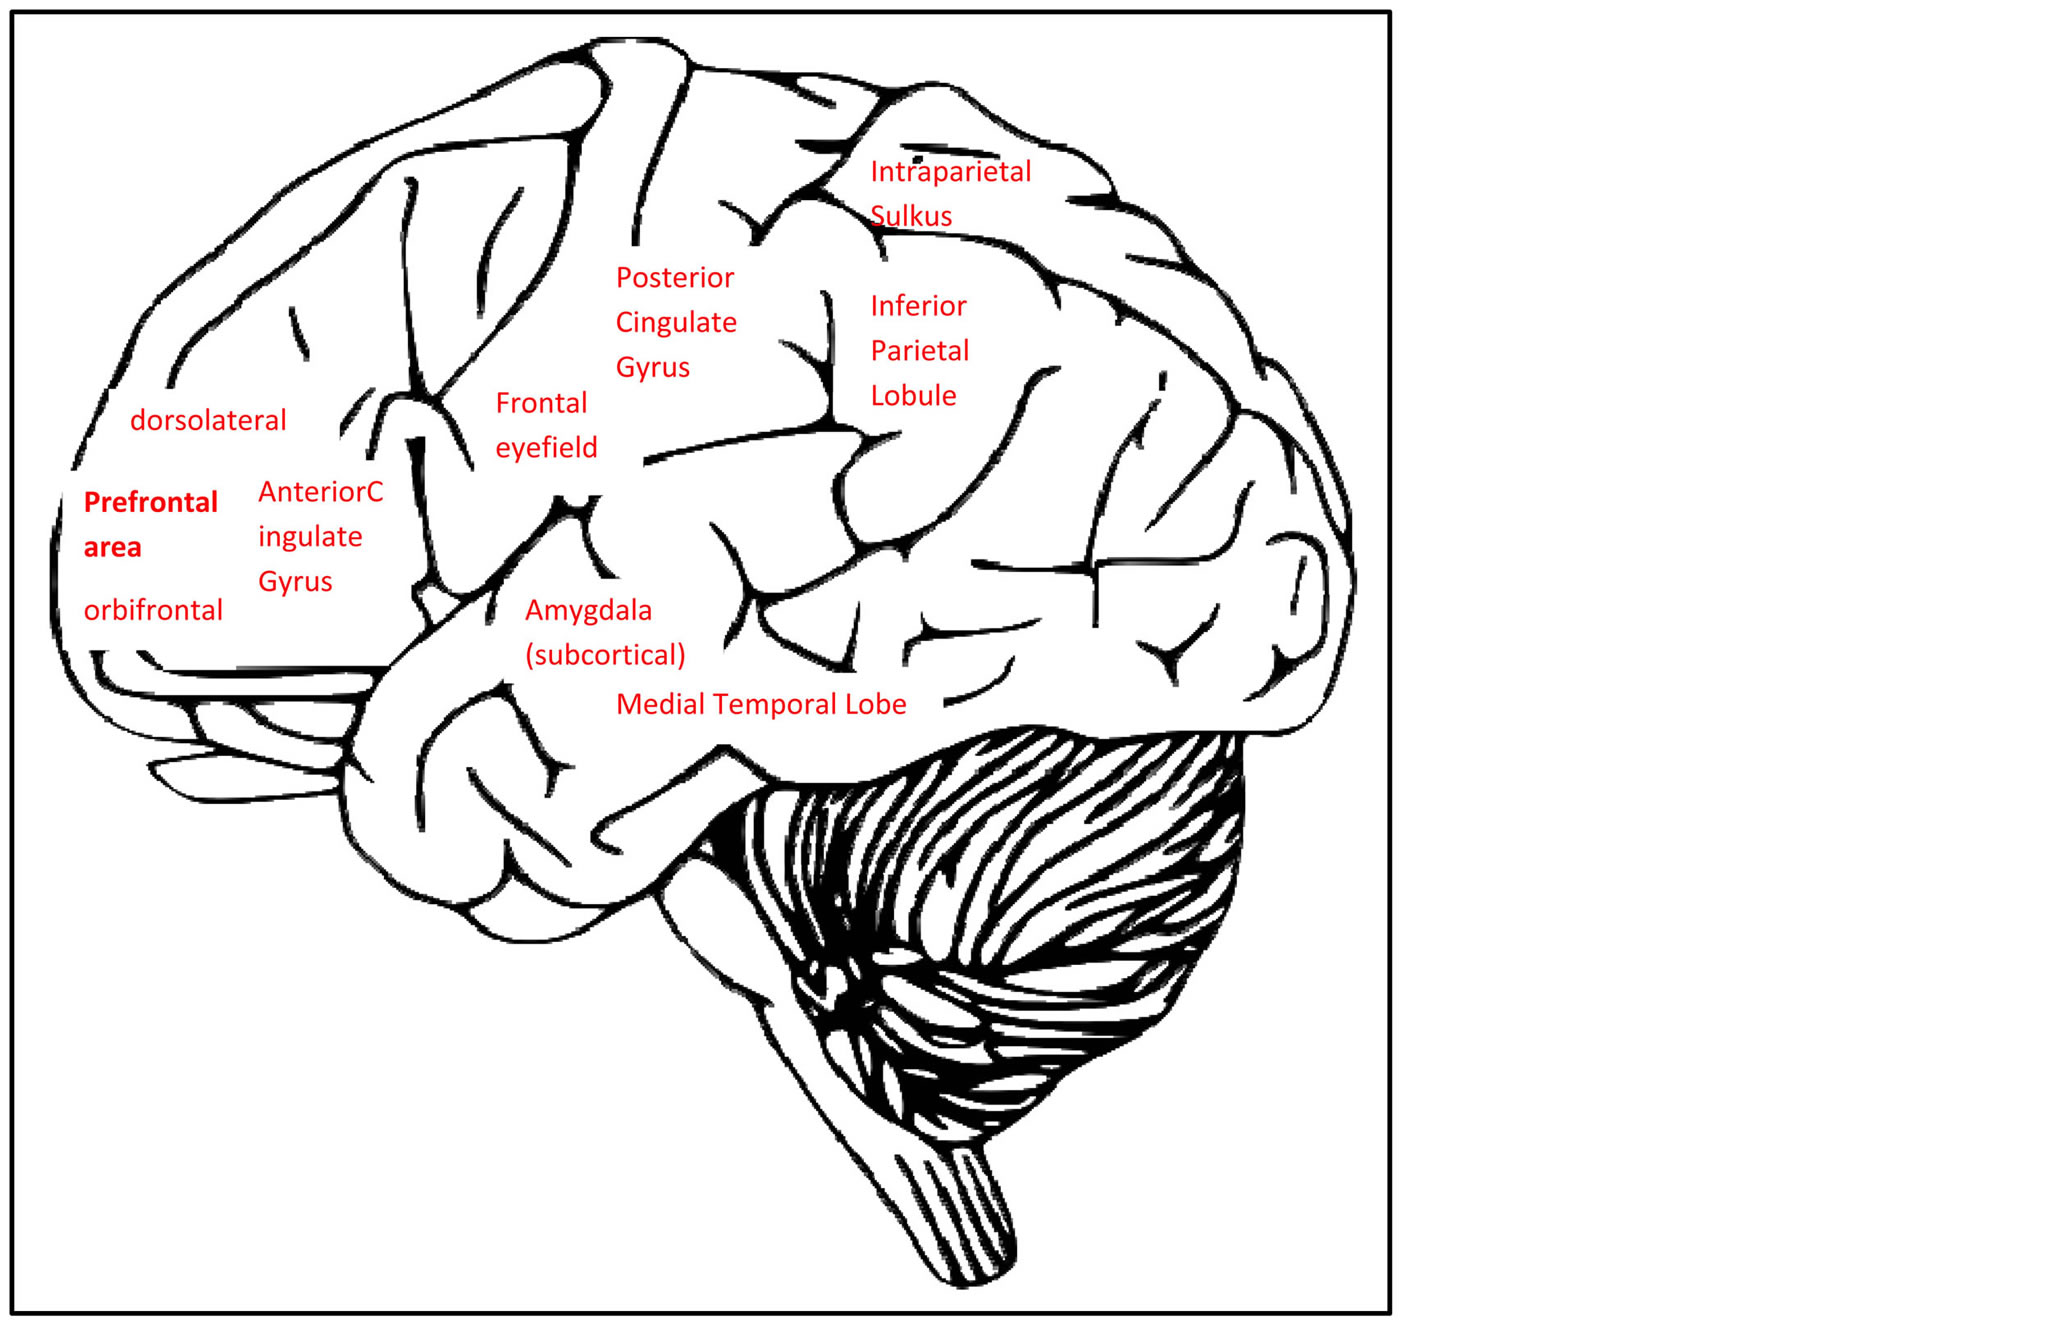 Cognitive Effects Of Late Life Depression Review Similar Results Simple Brain Diagram 505 Neuropsychological Findings